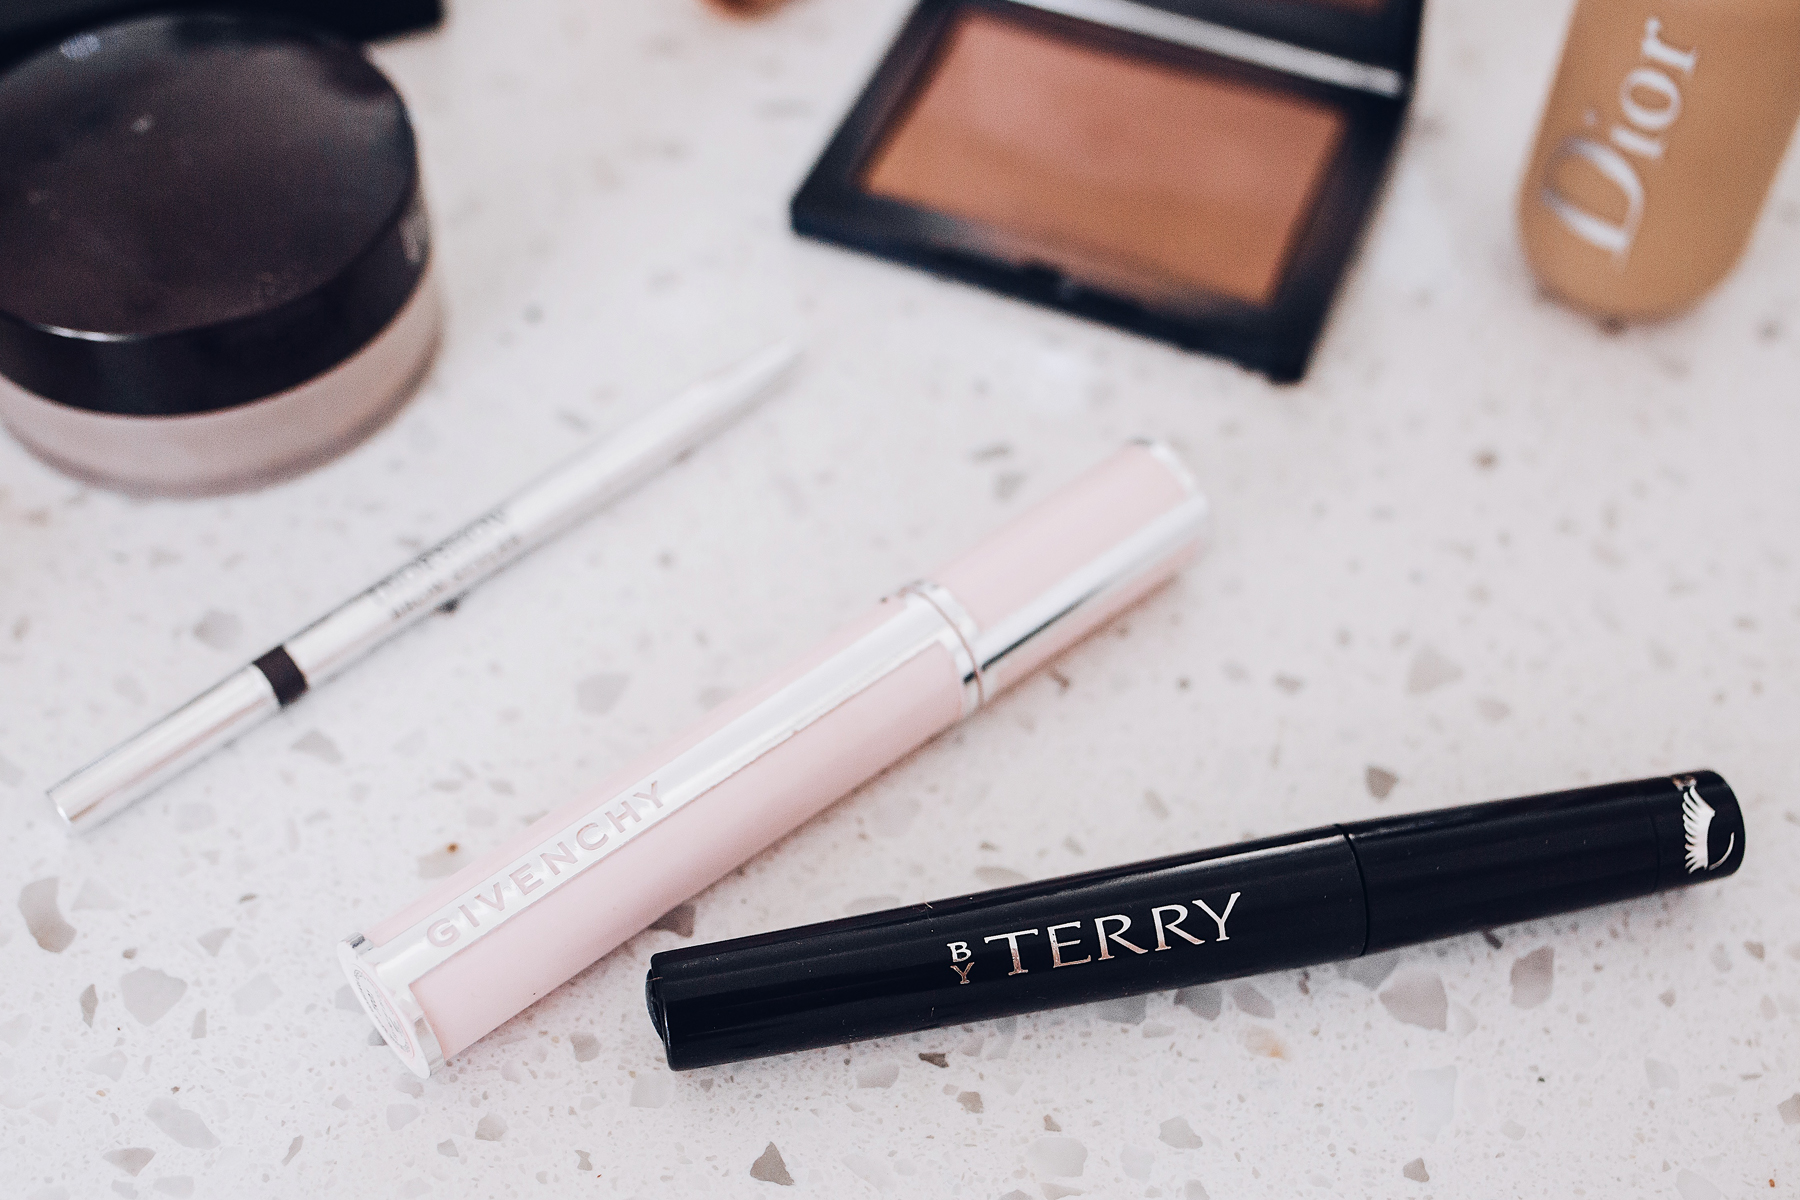 Fashion Jackson Daily Makeup Beauty Routine By Terry Lash Expert Twist Brush Mascara DiorShow Brow Pencil